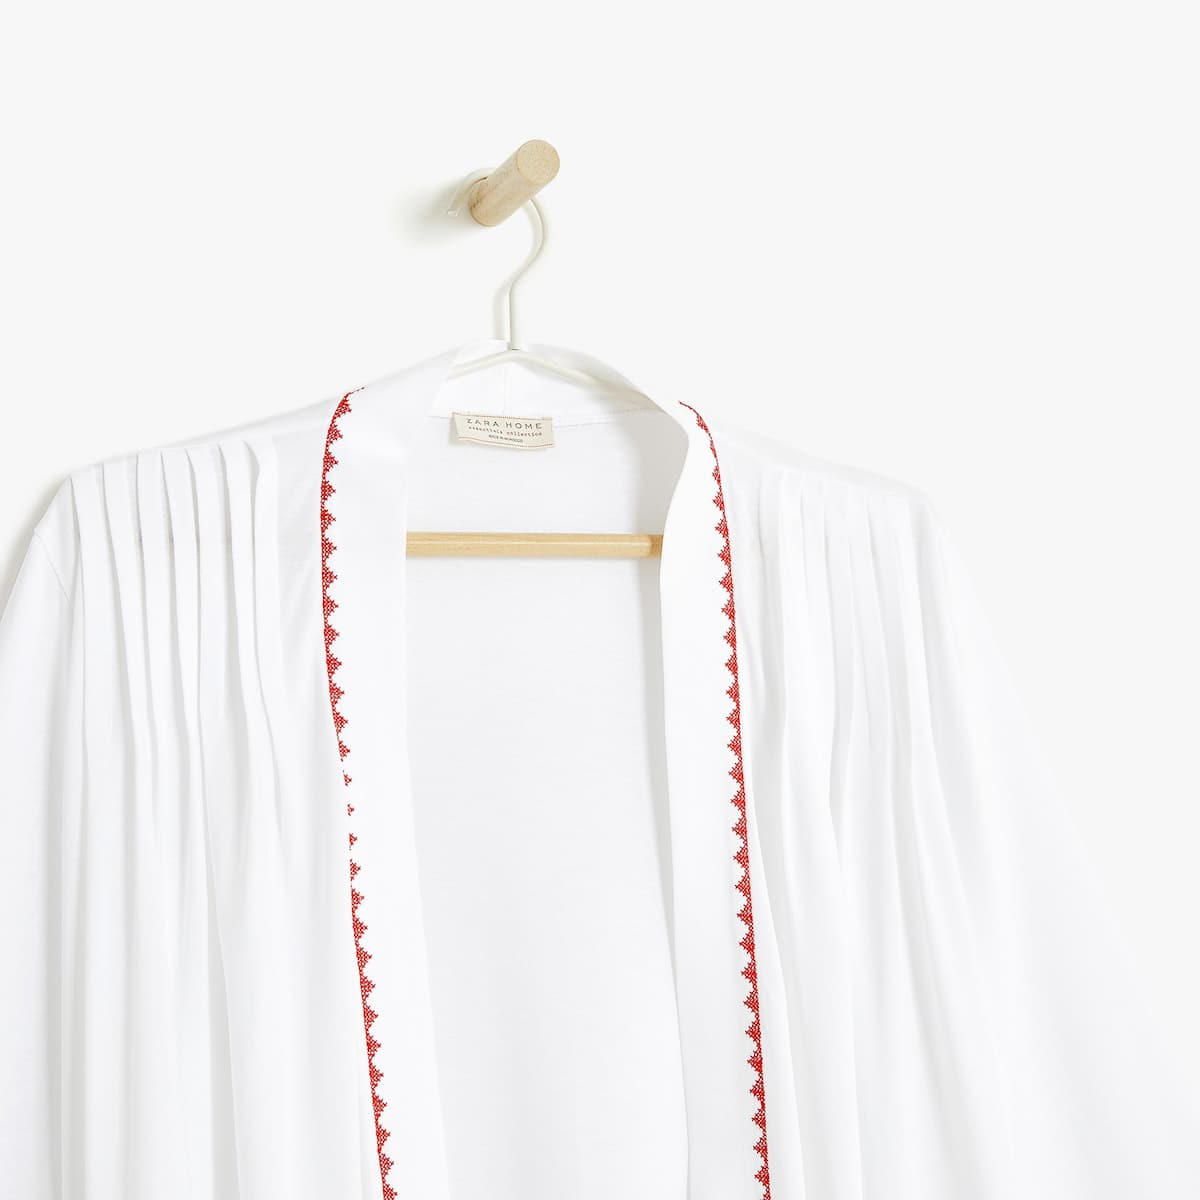 DRESSING GOWN WITH CONTRASTING EMBROIDERY - DRESSING GOWNS - WOMEN\'S ...